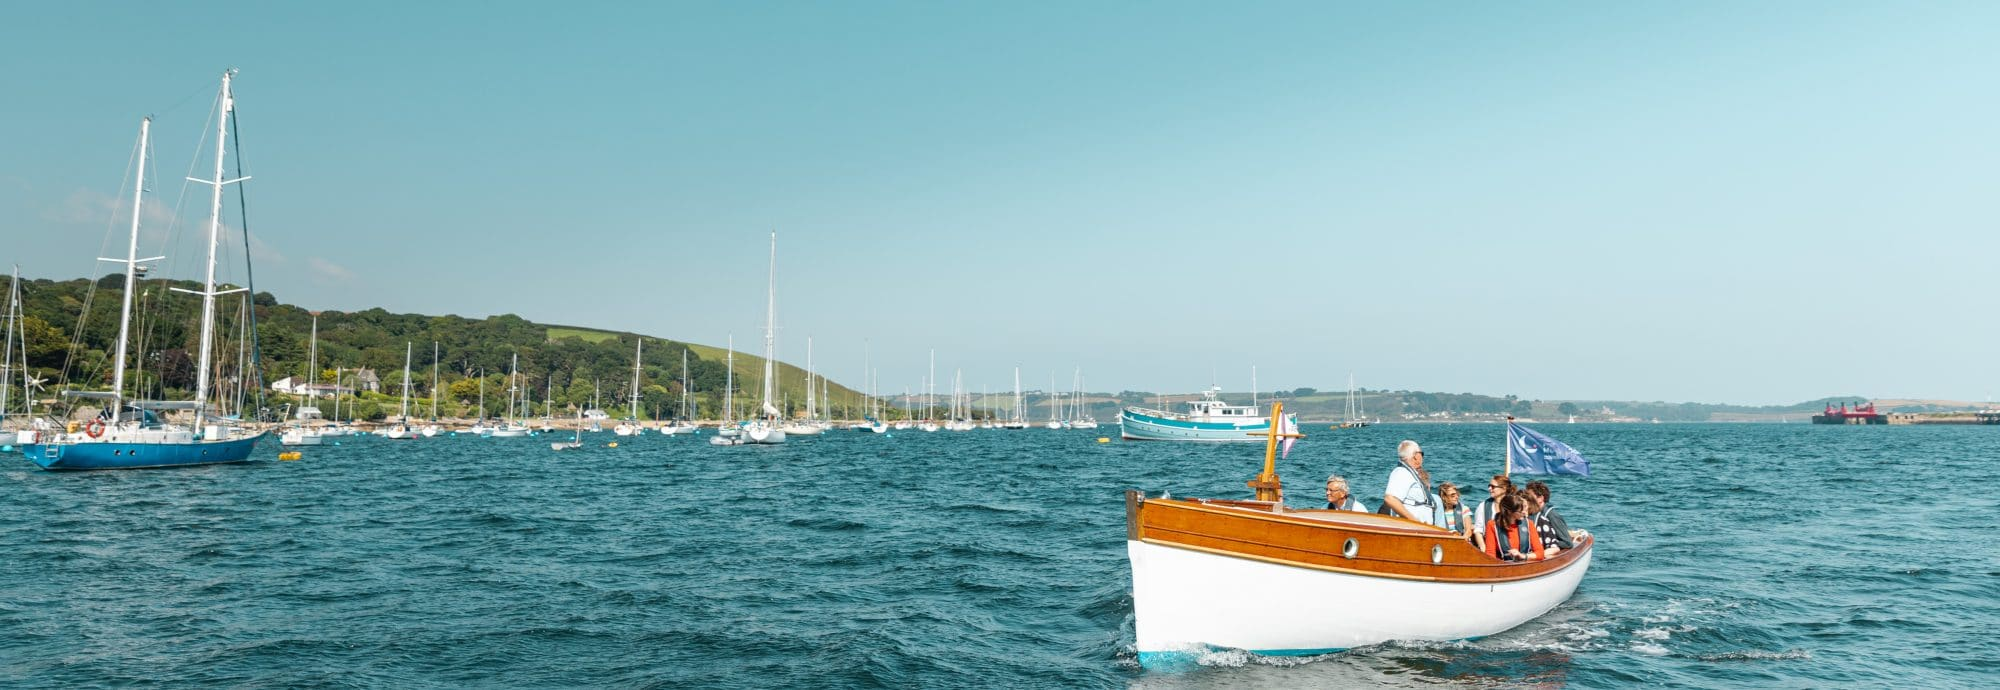 Heritage Boat Tours in Falmouth, Cornwall